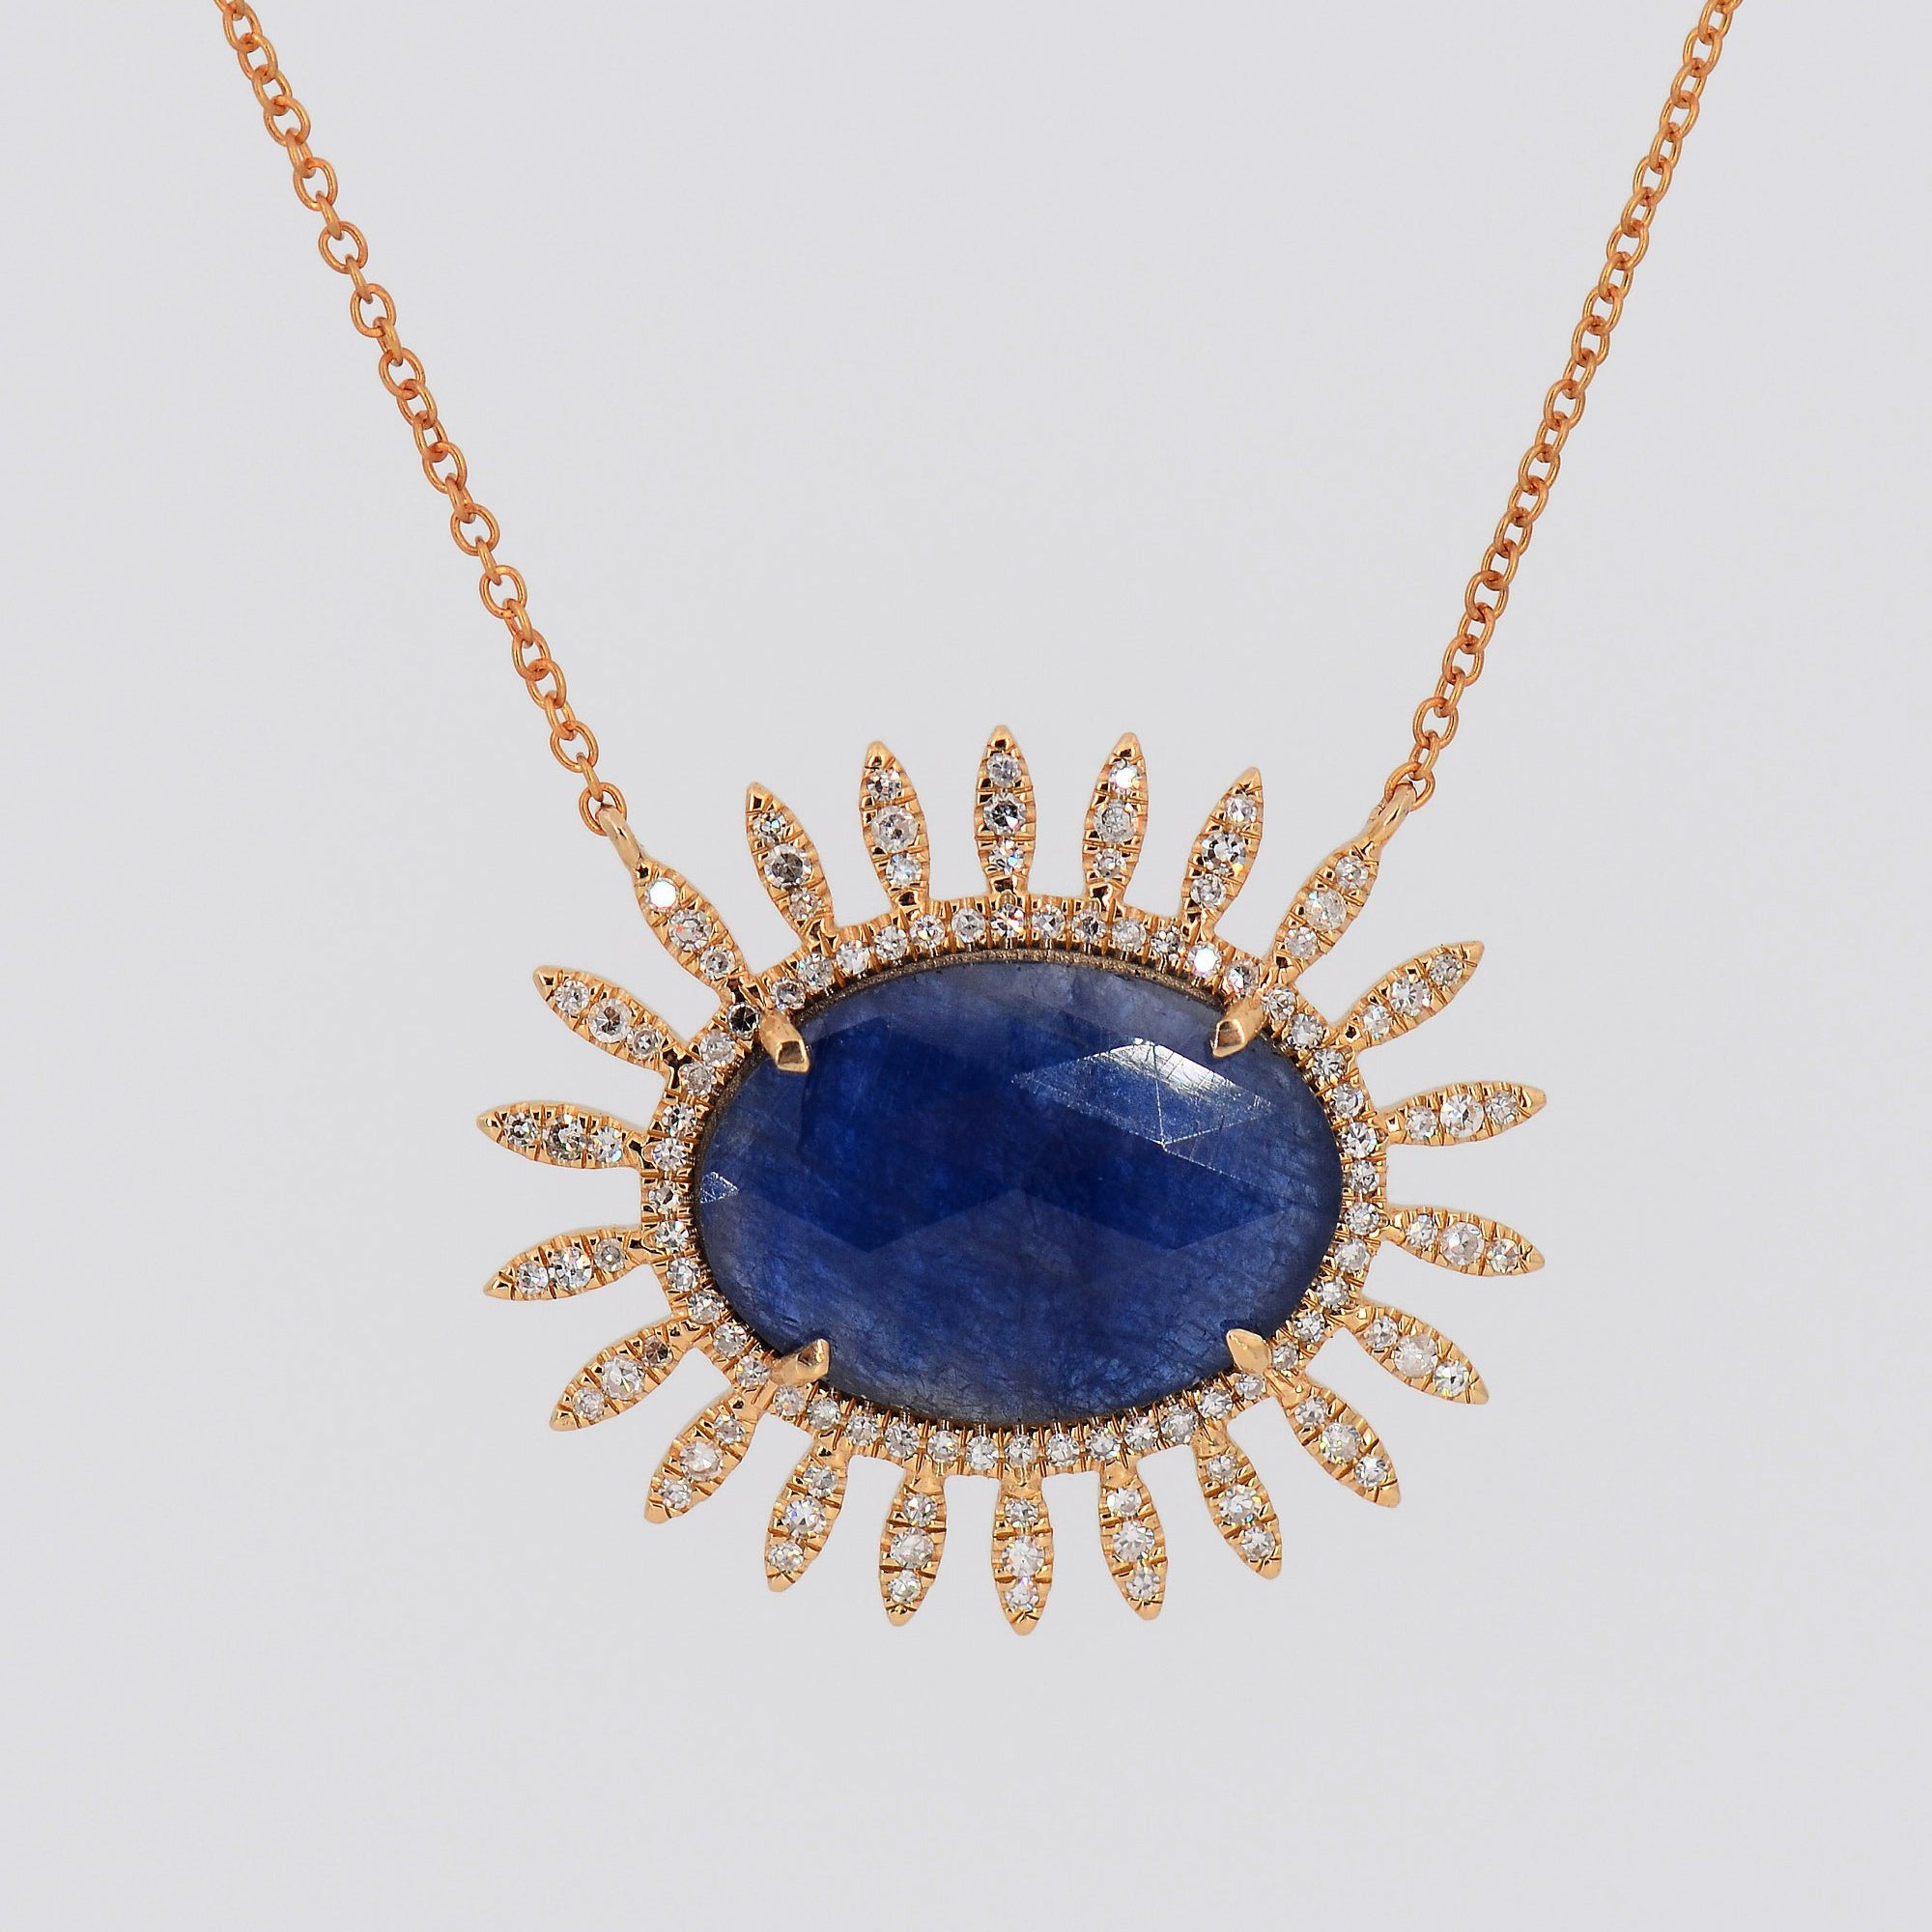 Diamond Sapphire Necklace, Statement Necklace